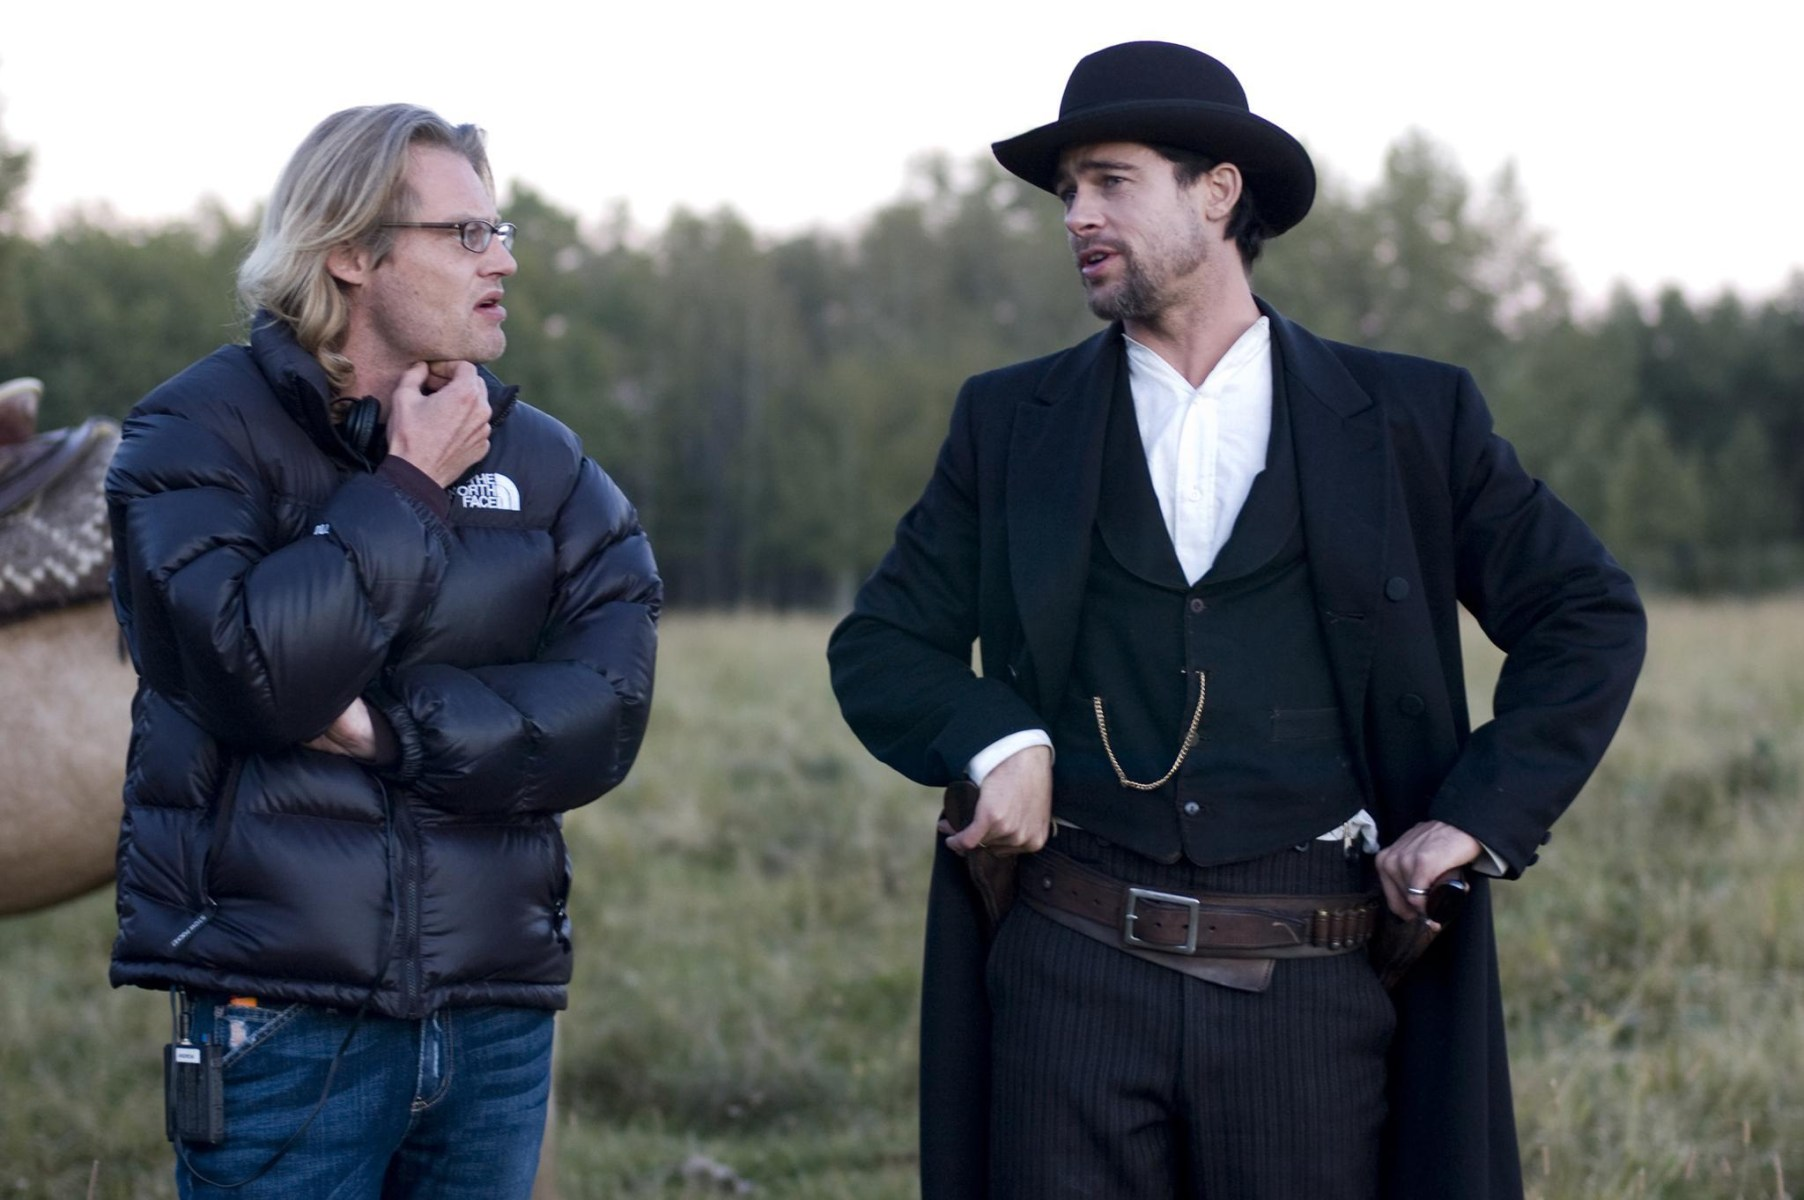 The Assassination of Jesse James by the Coward Robert Ford Behind the Scenes Photos & Tech Specs